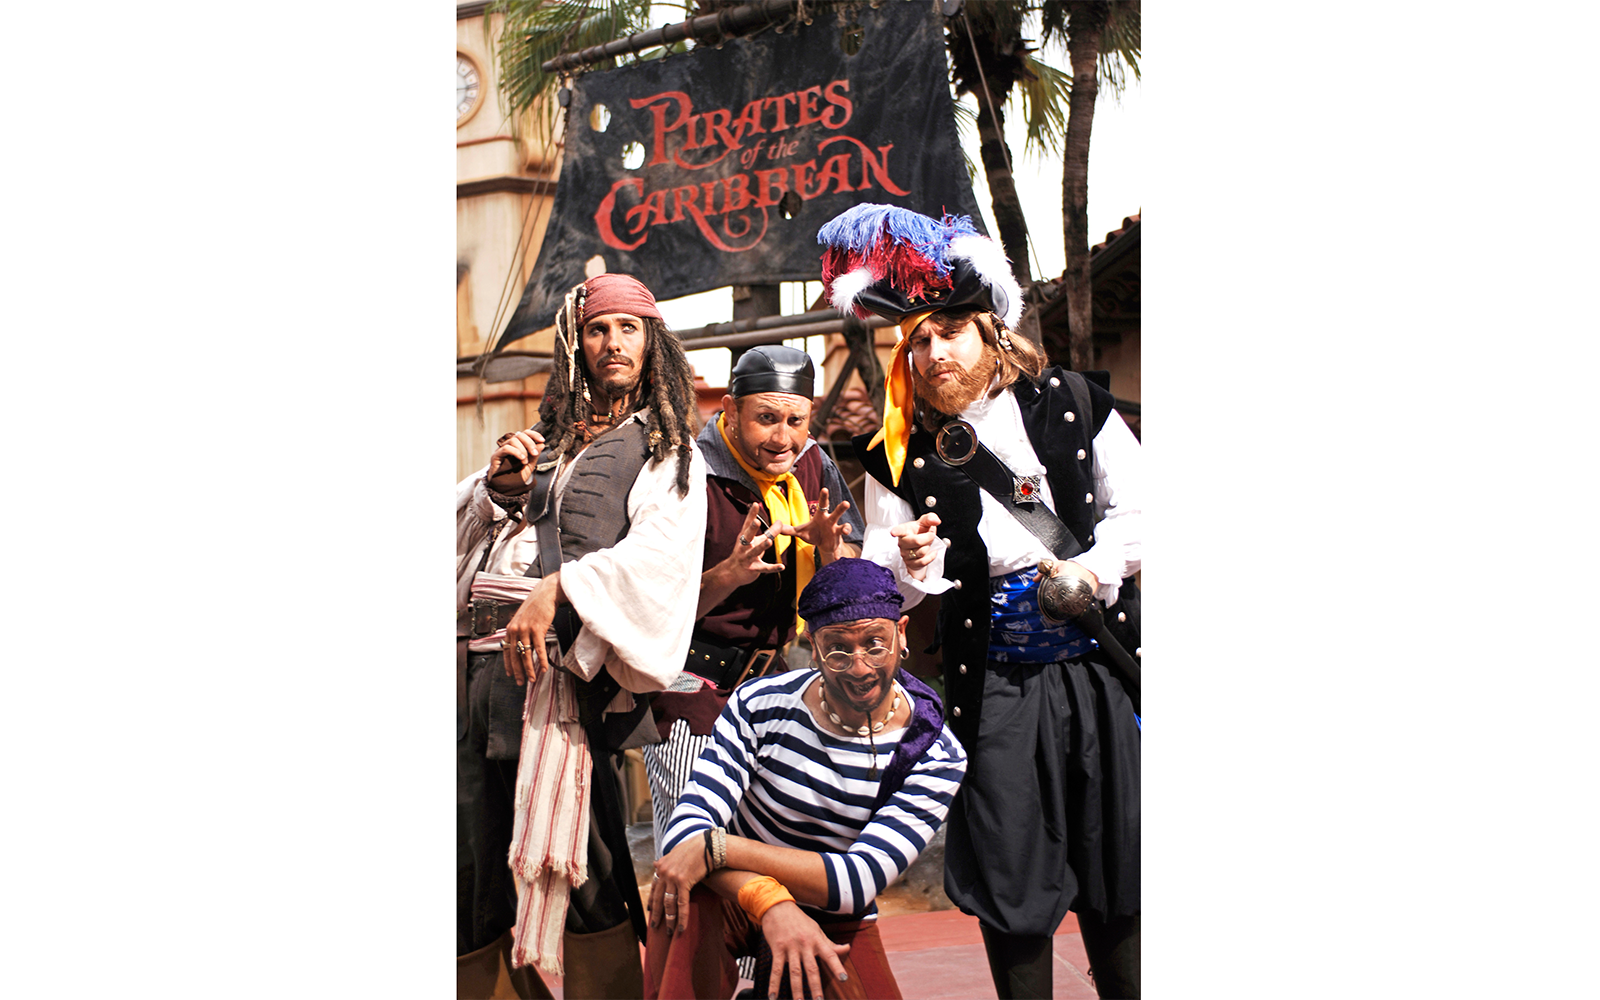 Things You Didn't Know About Disney Parks: Pirates of the Caribbean